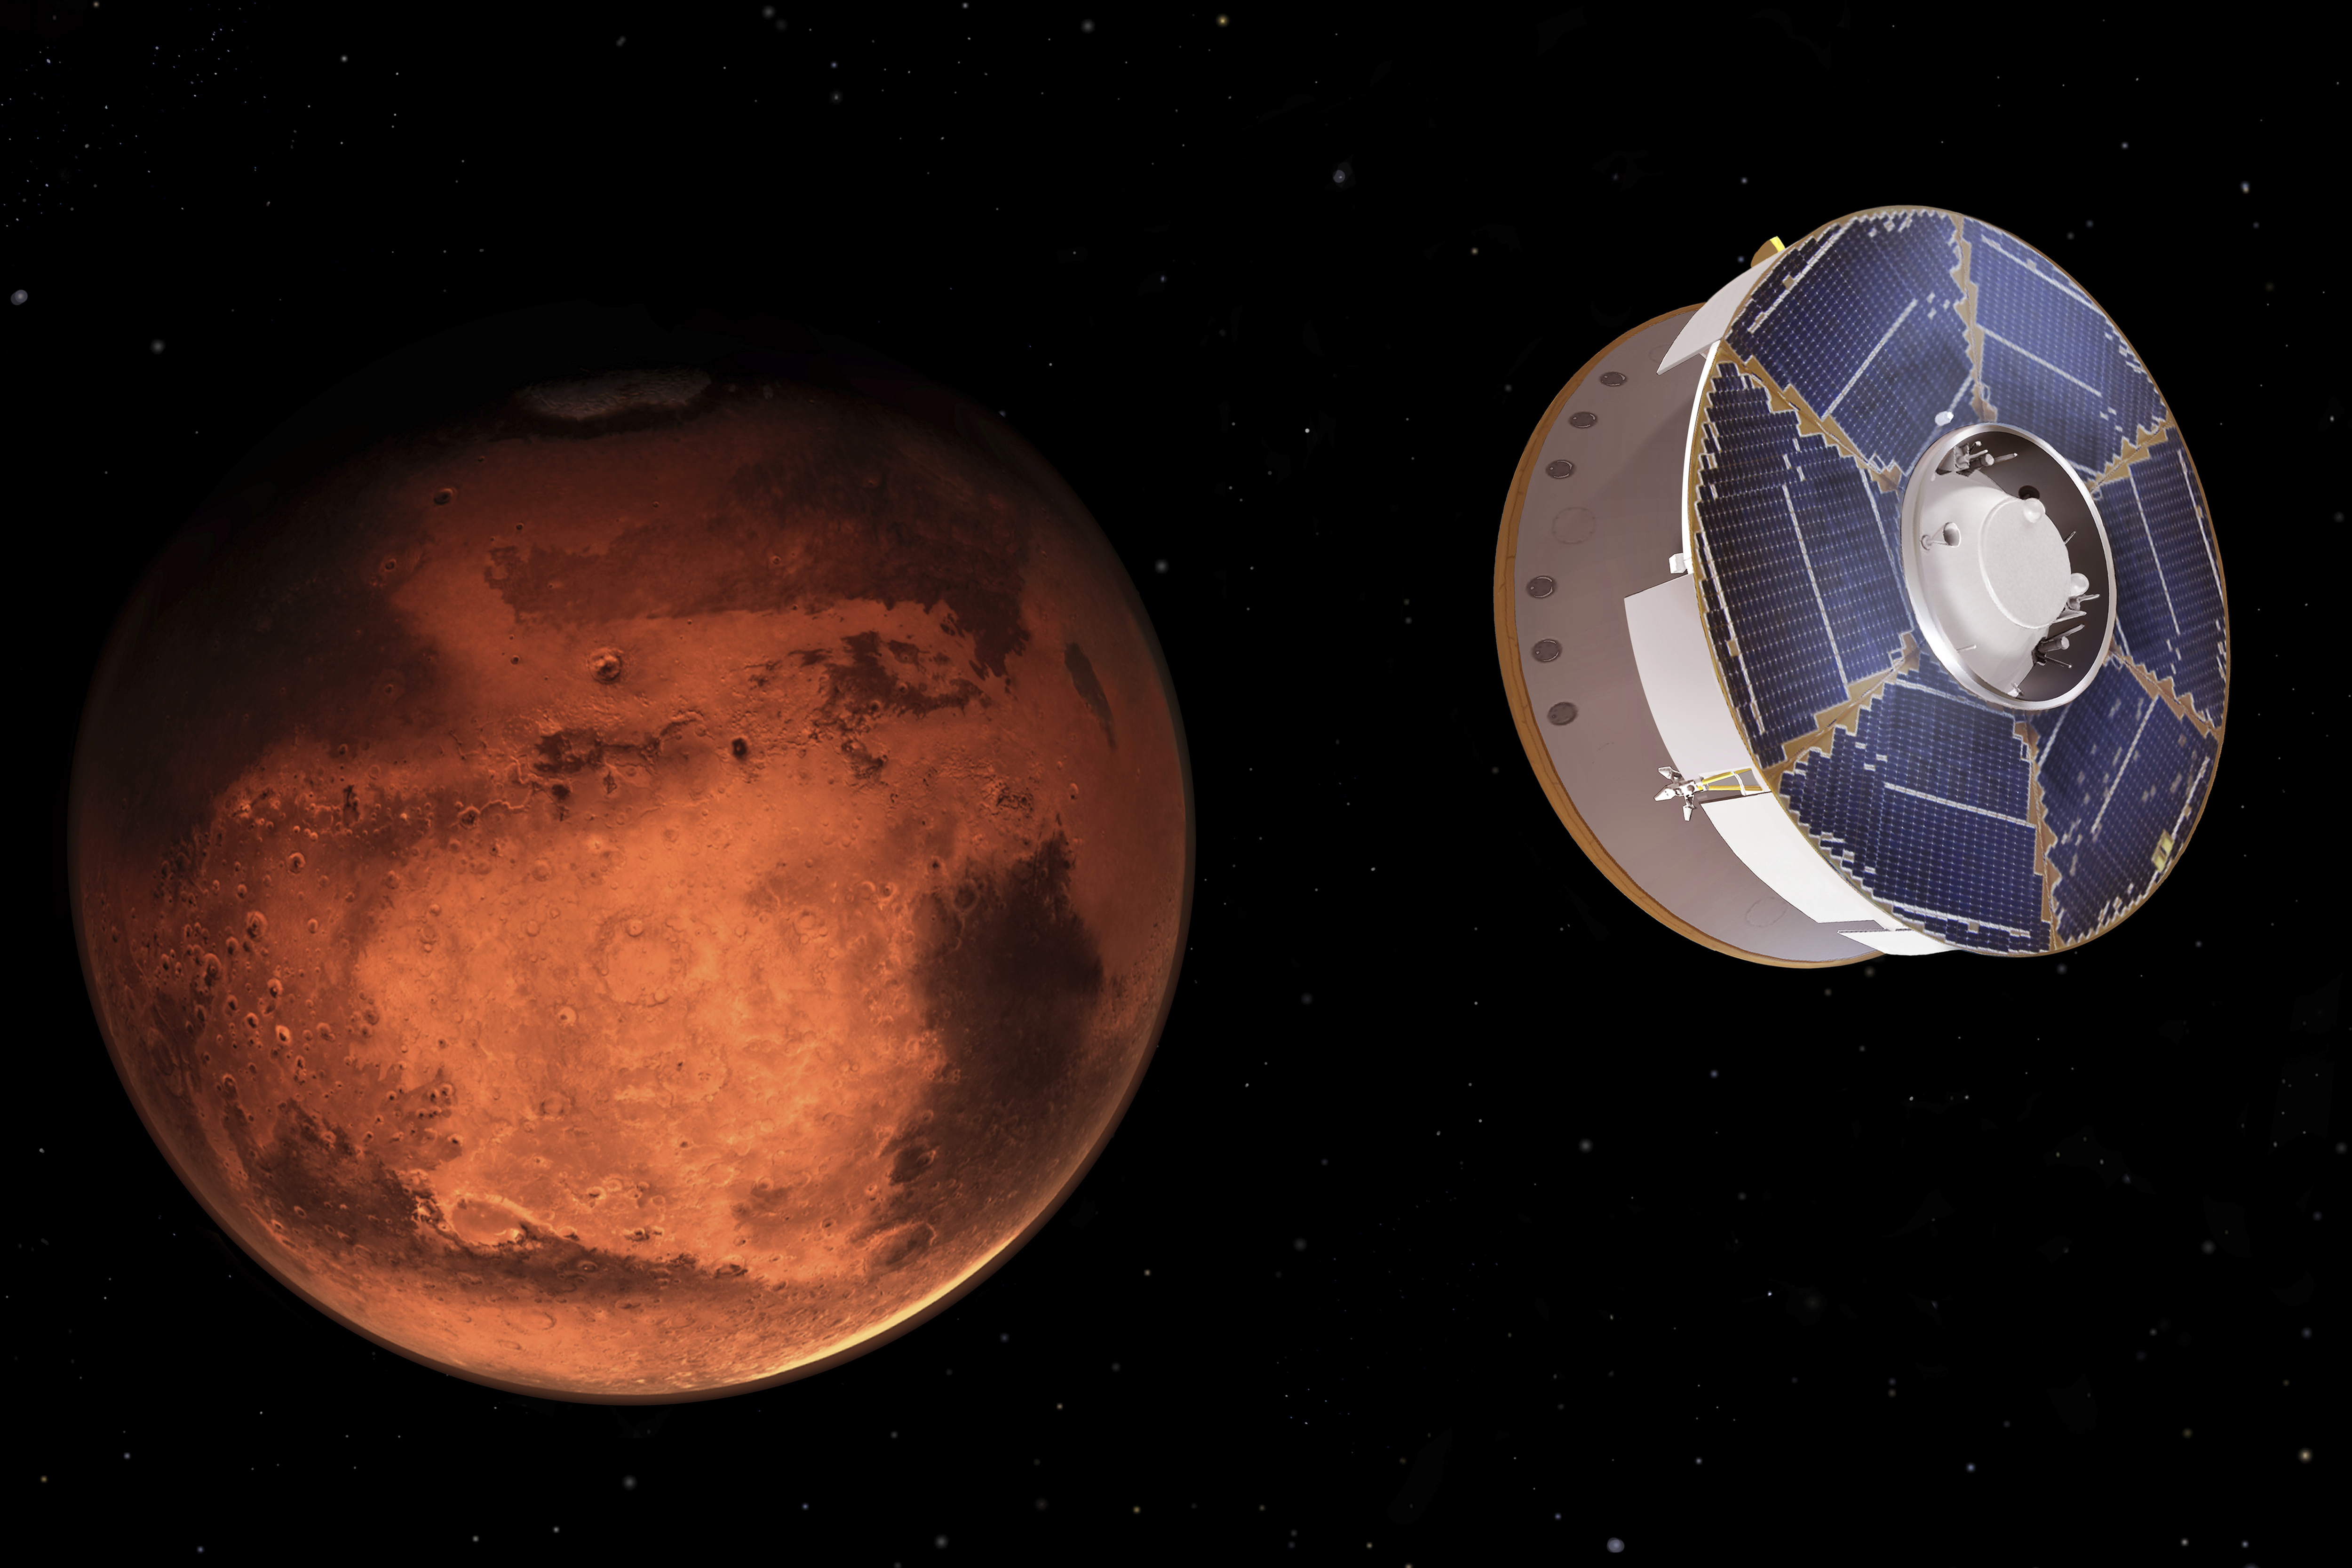 Hundreds of critical events were executed precisely on time for the rover to land on Mars safely